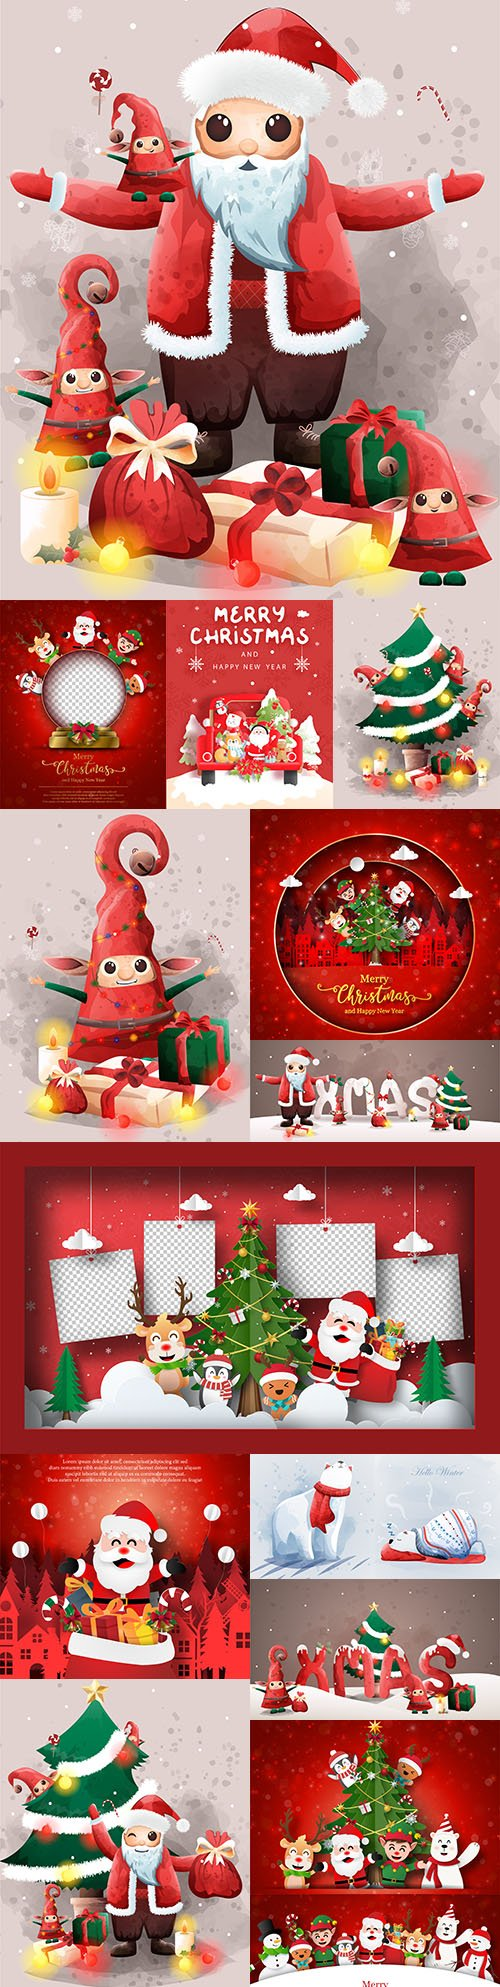 Santa Claus and cute elf Christmas Eve friends with gifts